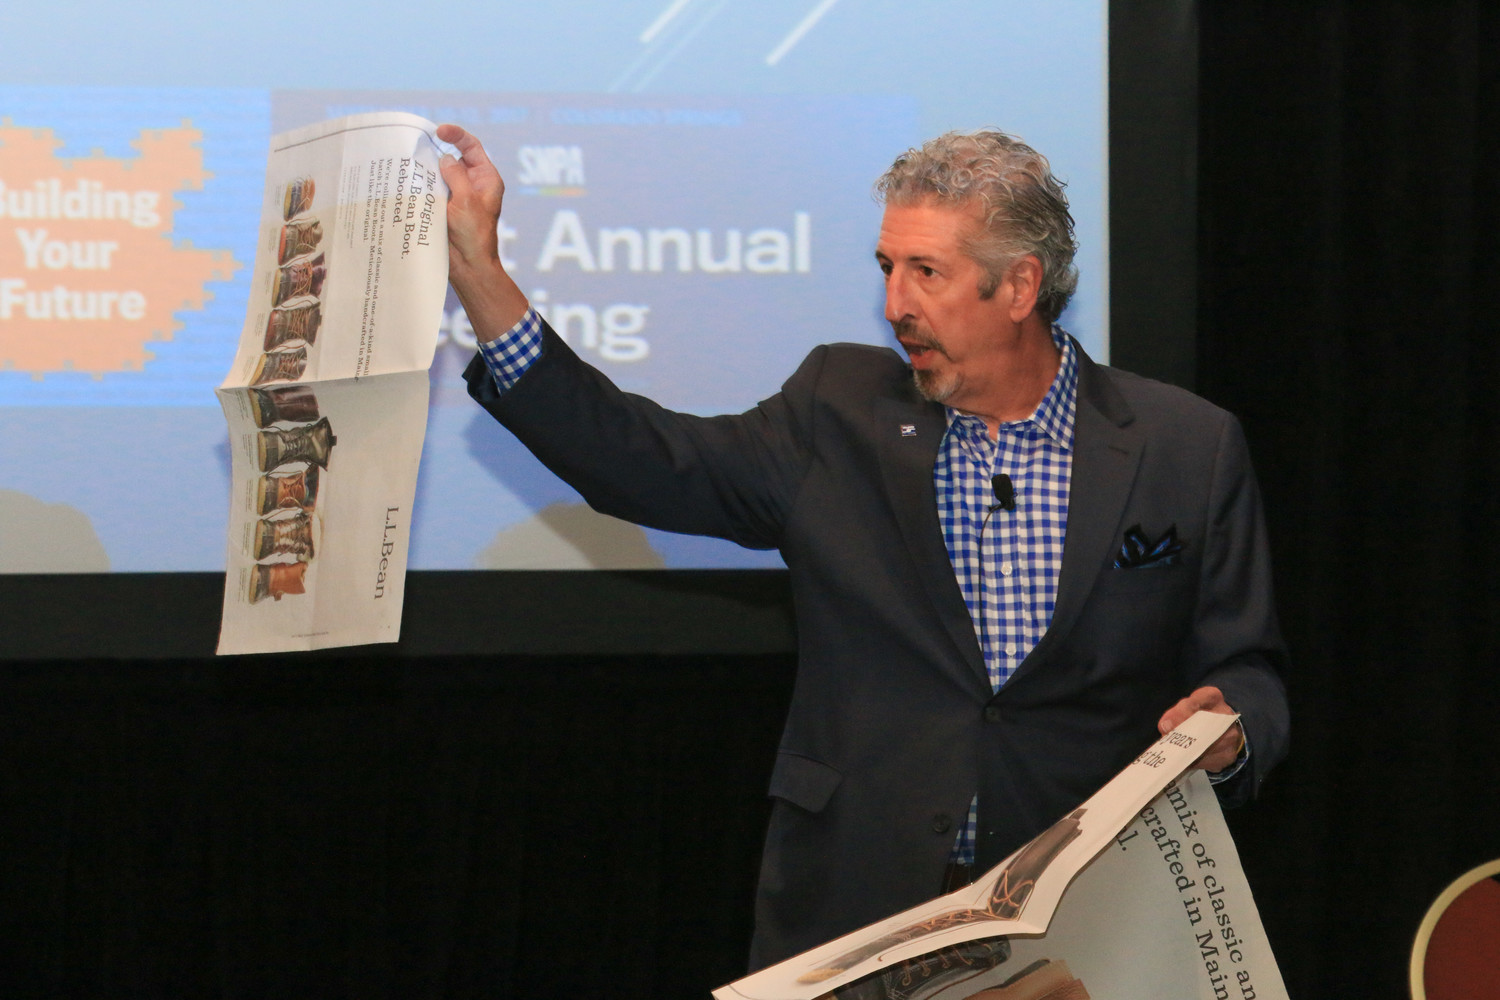 Leading the final session of the joint Inland/SNPA Annual Meeting, Tom Yunt shows examples of front page wraps The New York Times has sold to high-end advertisers.